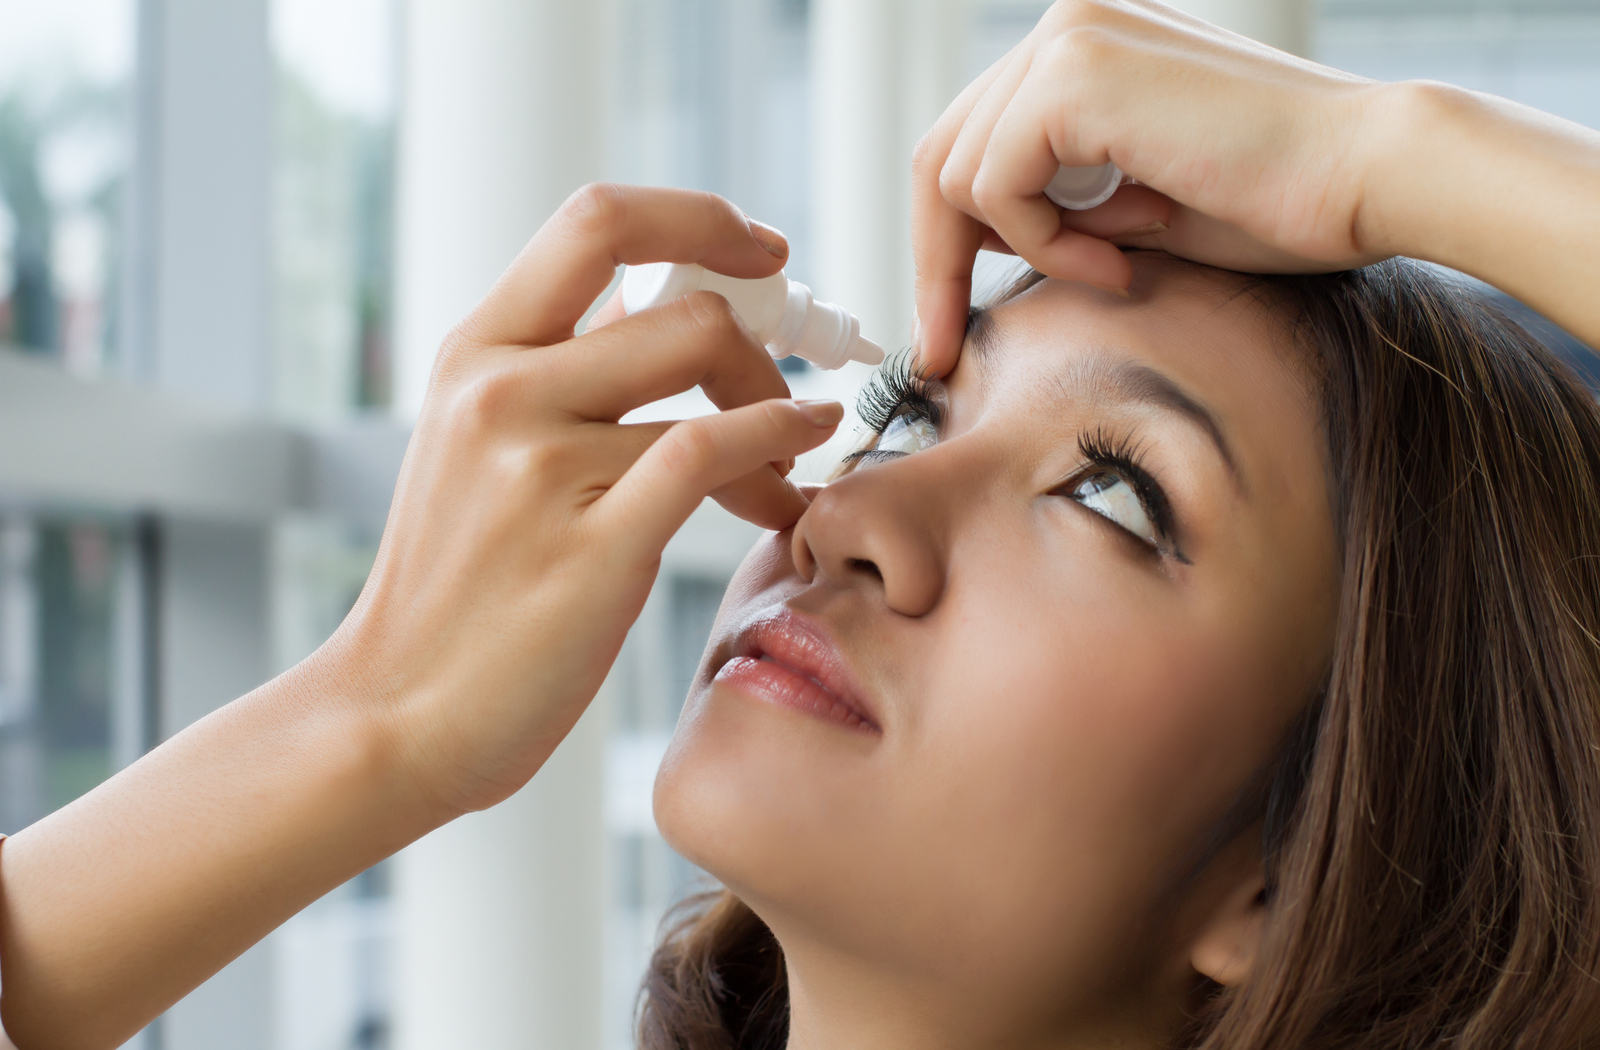 a woman of asian descent administering eye drops into her right eye